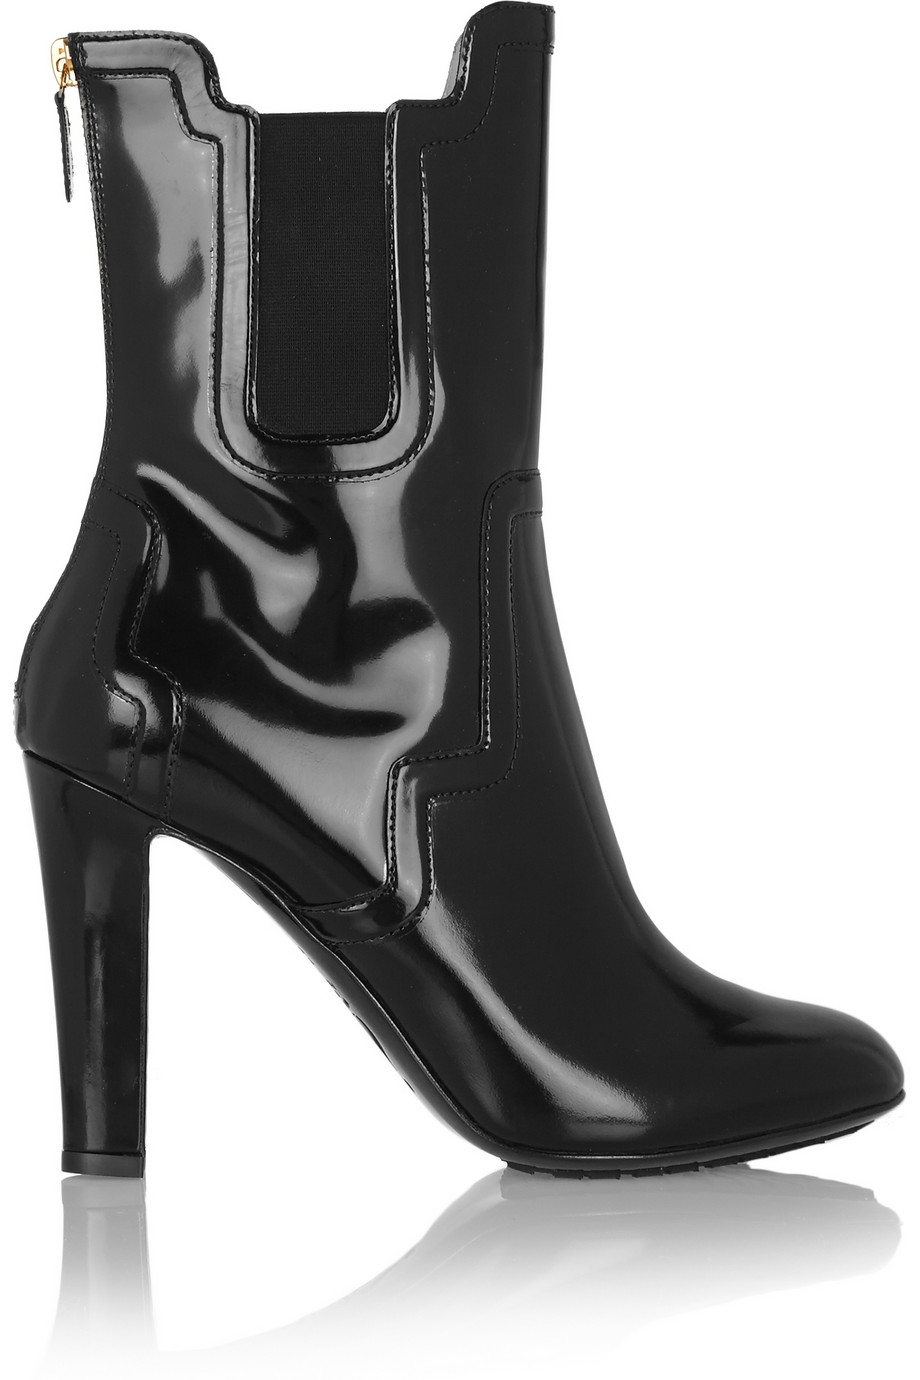 Moschino Patent Leather Boots Outlet Store Cheap Price Get Authentic Sale Sast 2KyllkE29